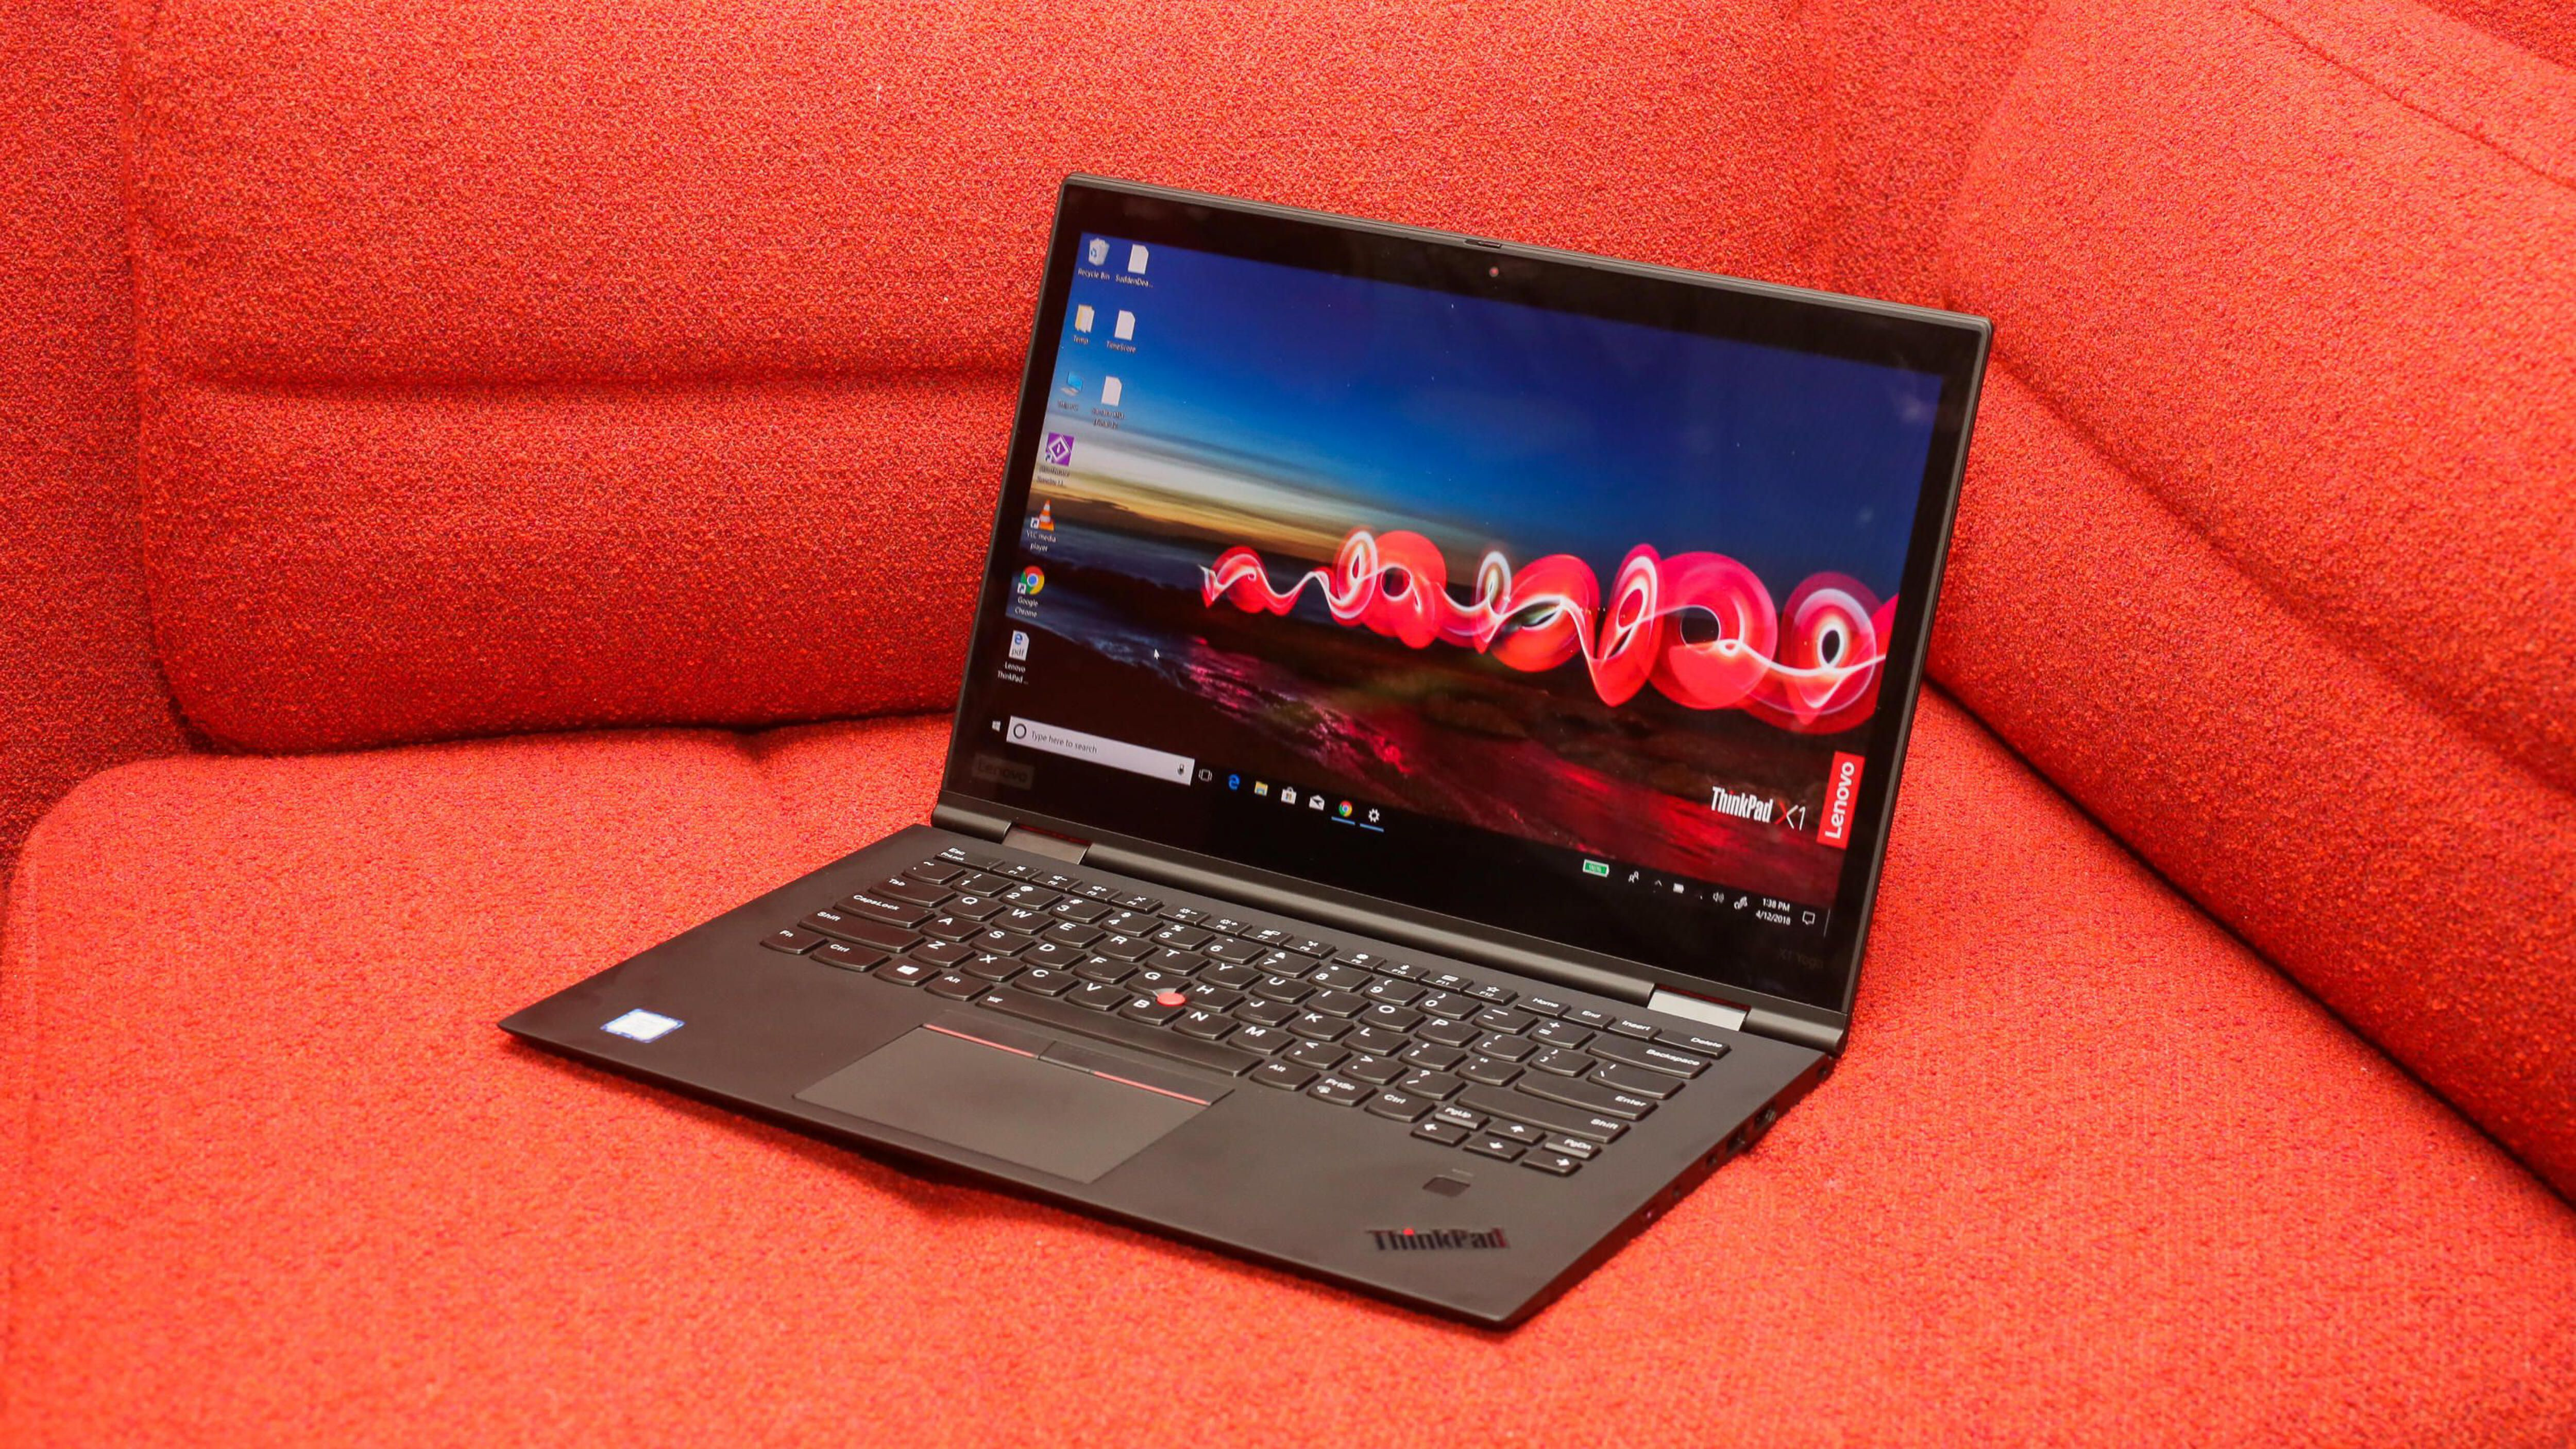 Windows-laptop-how-to-tech-hint-cnet-2021-windows-laptop-thinkpad-over-product-snapshot